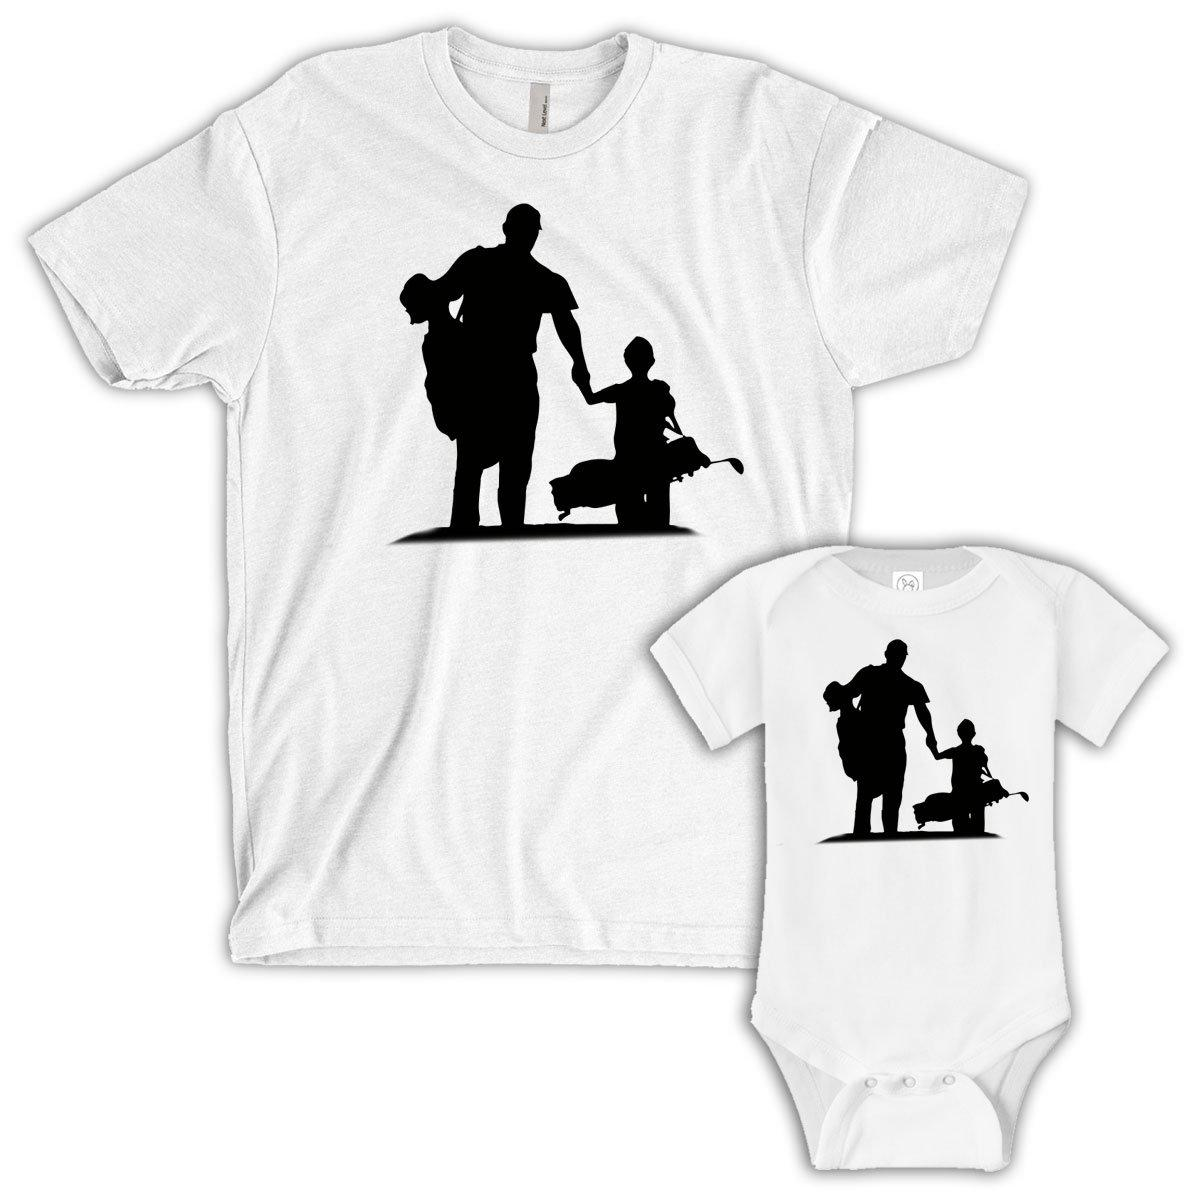 Partners, Father/Child (Matching Set) - White